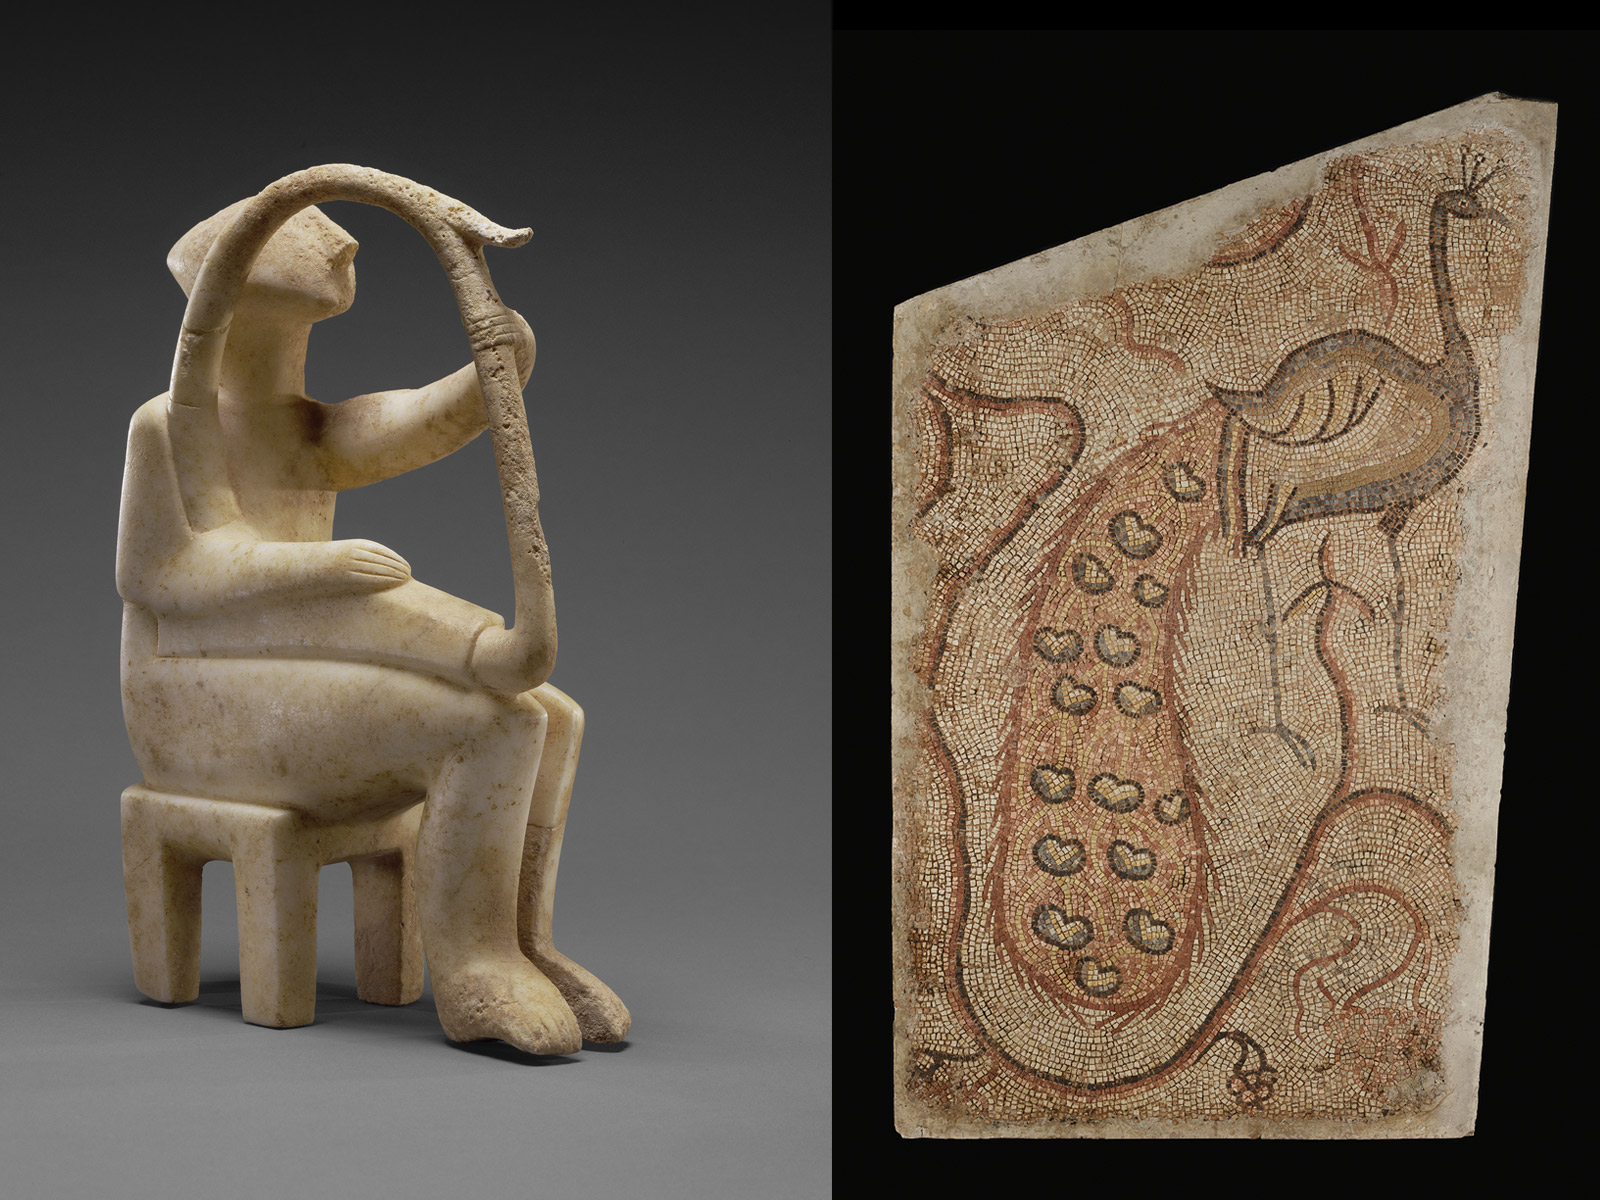 An ancient white-marble figurine of a seated harp player at left, and a stone mosaic of a standing male peacock, right